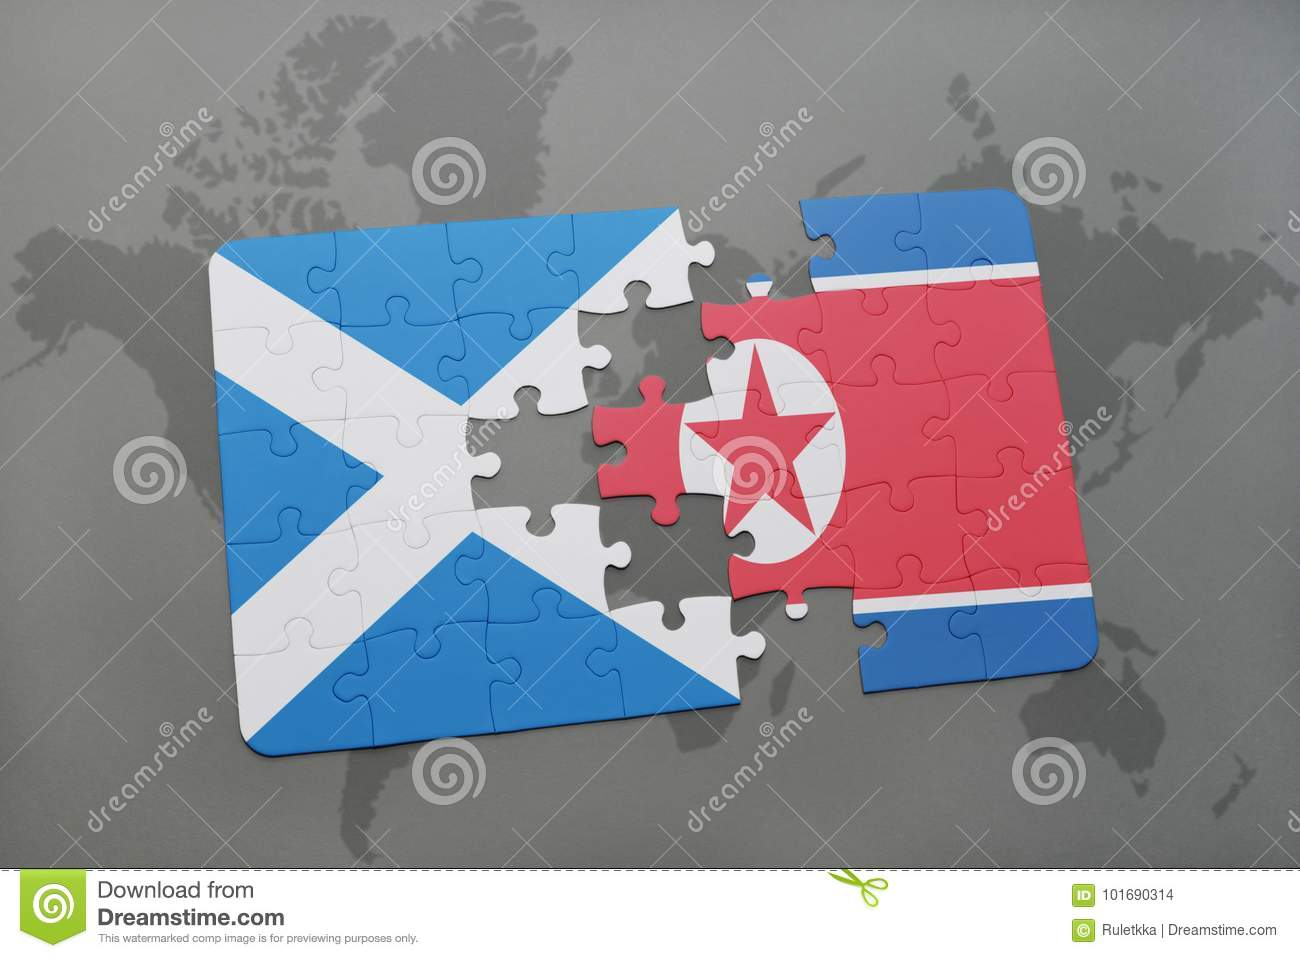 Puzzle With The National Flag Of Scotland And North Korea On A World ...